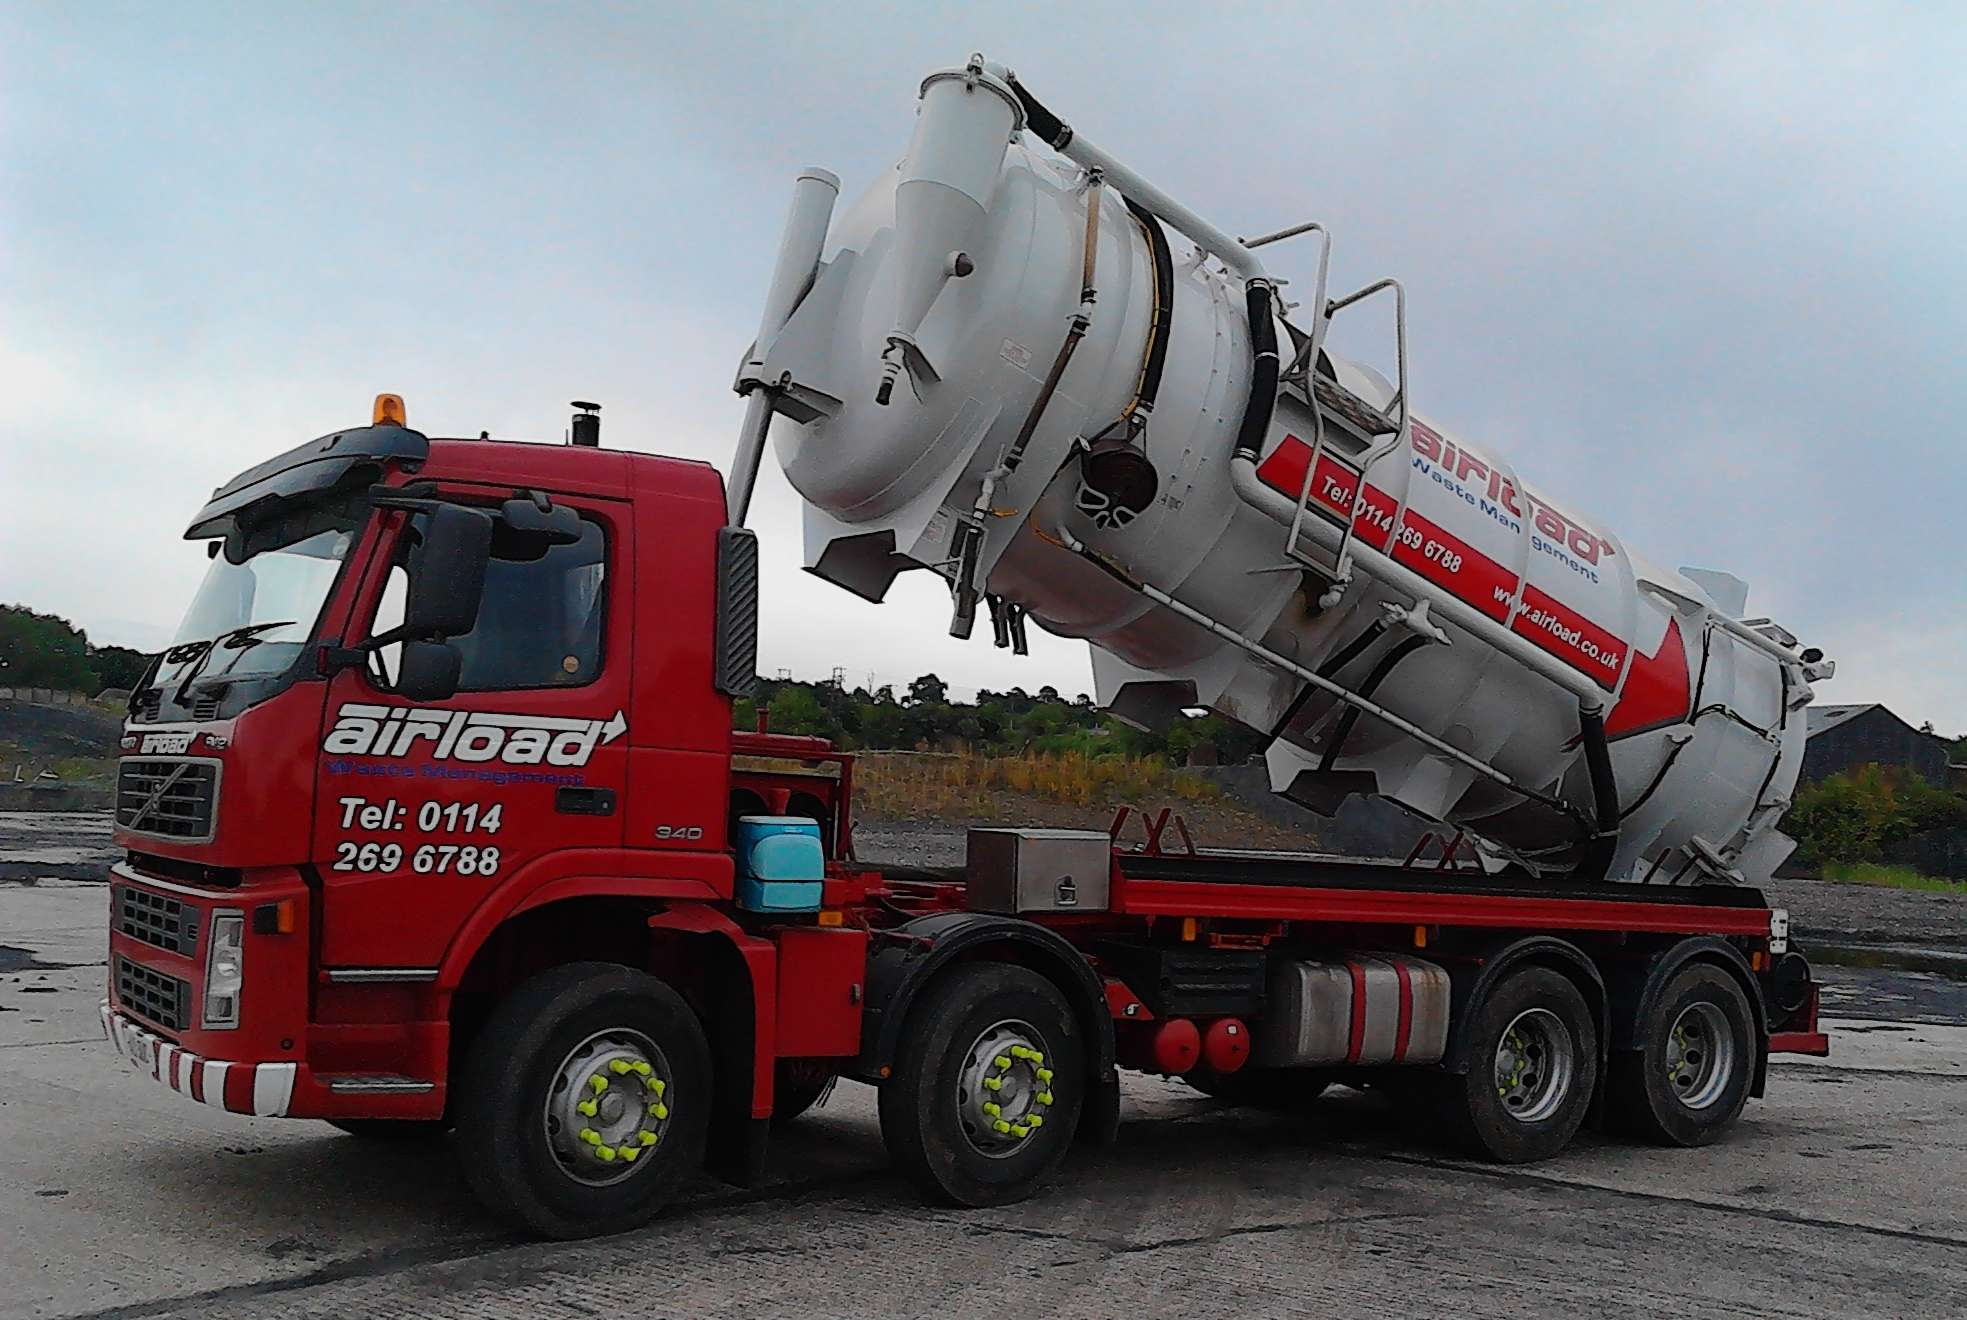 sheffield waste managemant vacuum tanker with tipping capabilities